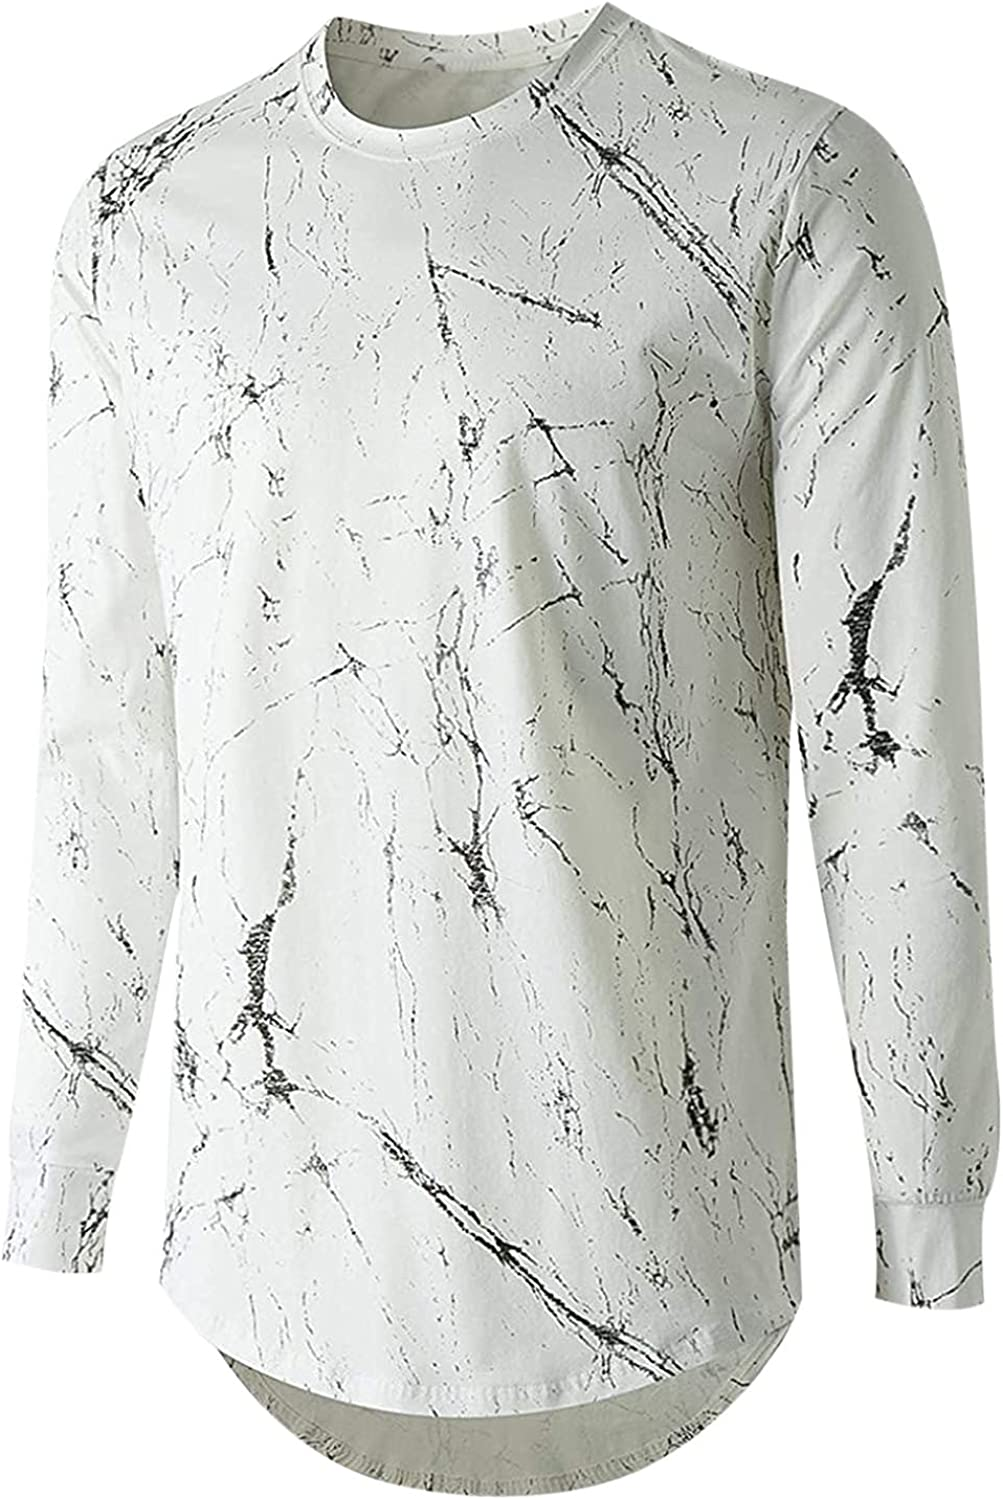 Mens Long Sleeve Shirts Slim Crew Neck Hem Printed Shirt Lightweight Breatheable Blouse Casual Stretch Workout Tops